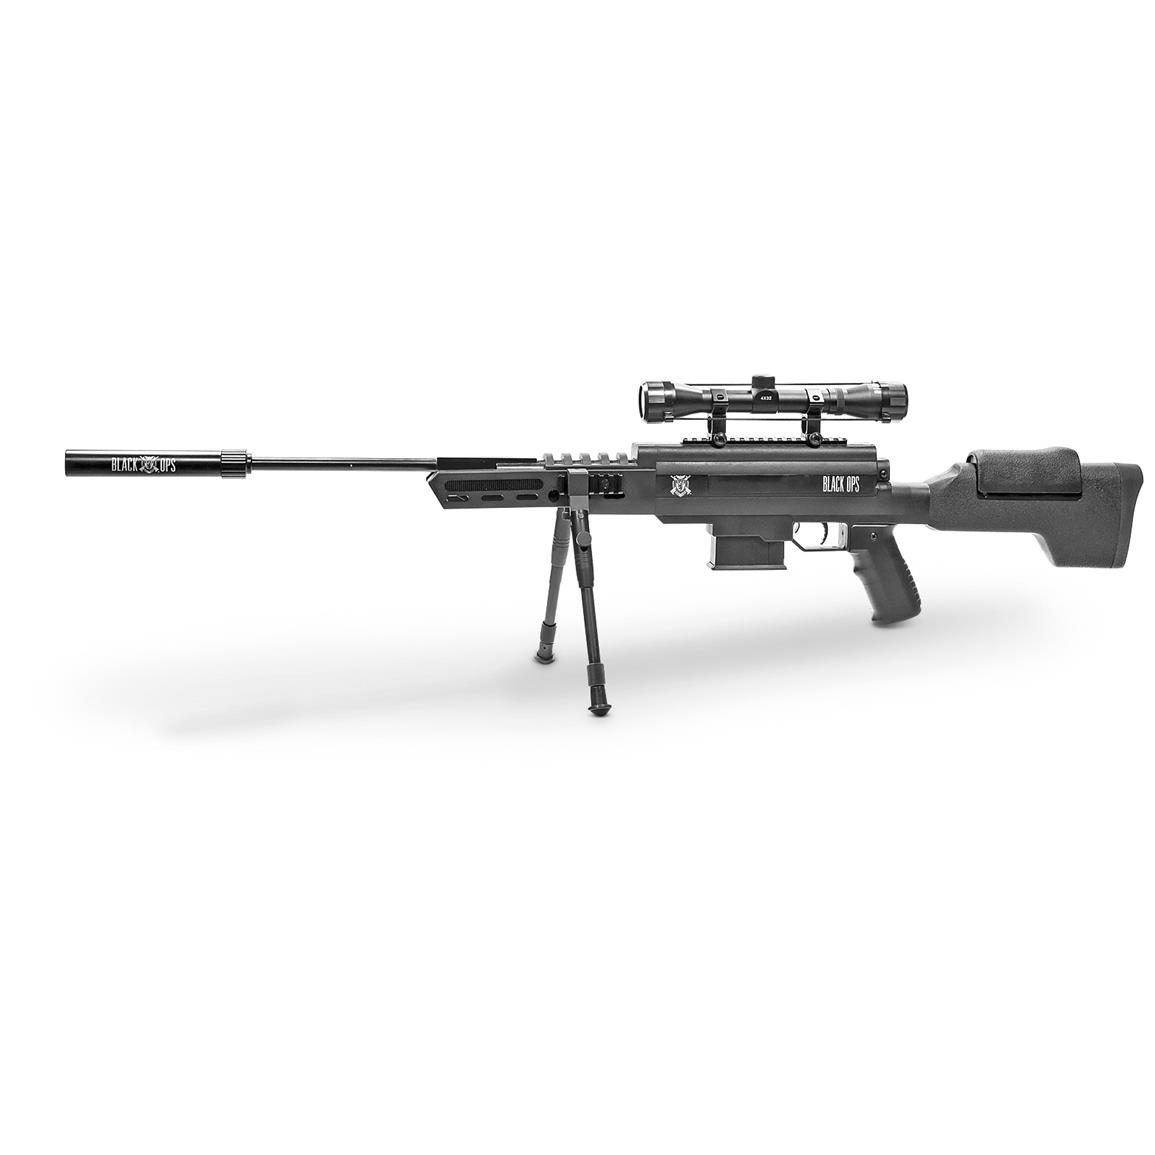 Black Ops Tactical Sniper Air Rifle, .177 Caliber